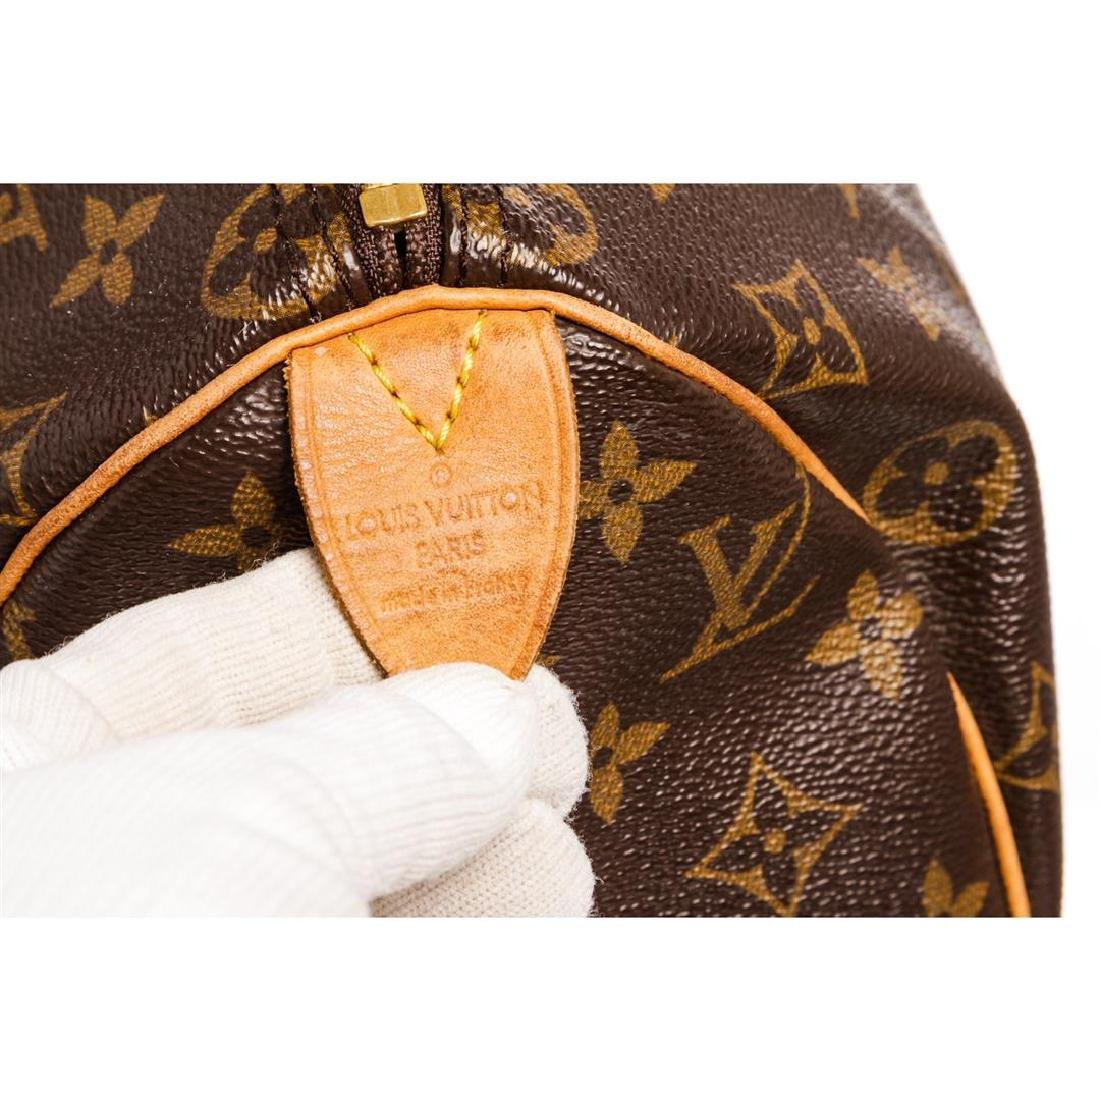 Louis Vuitton Monogram Canvas Leather Speedy 25 cm Bag - 7